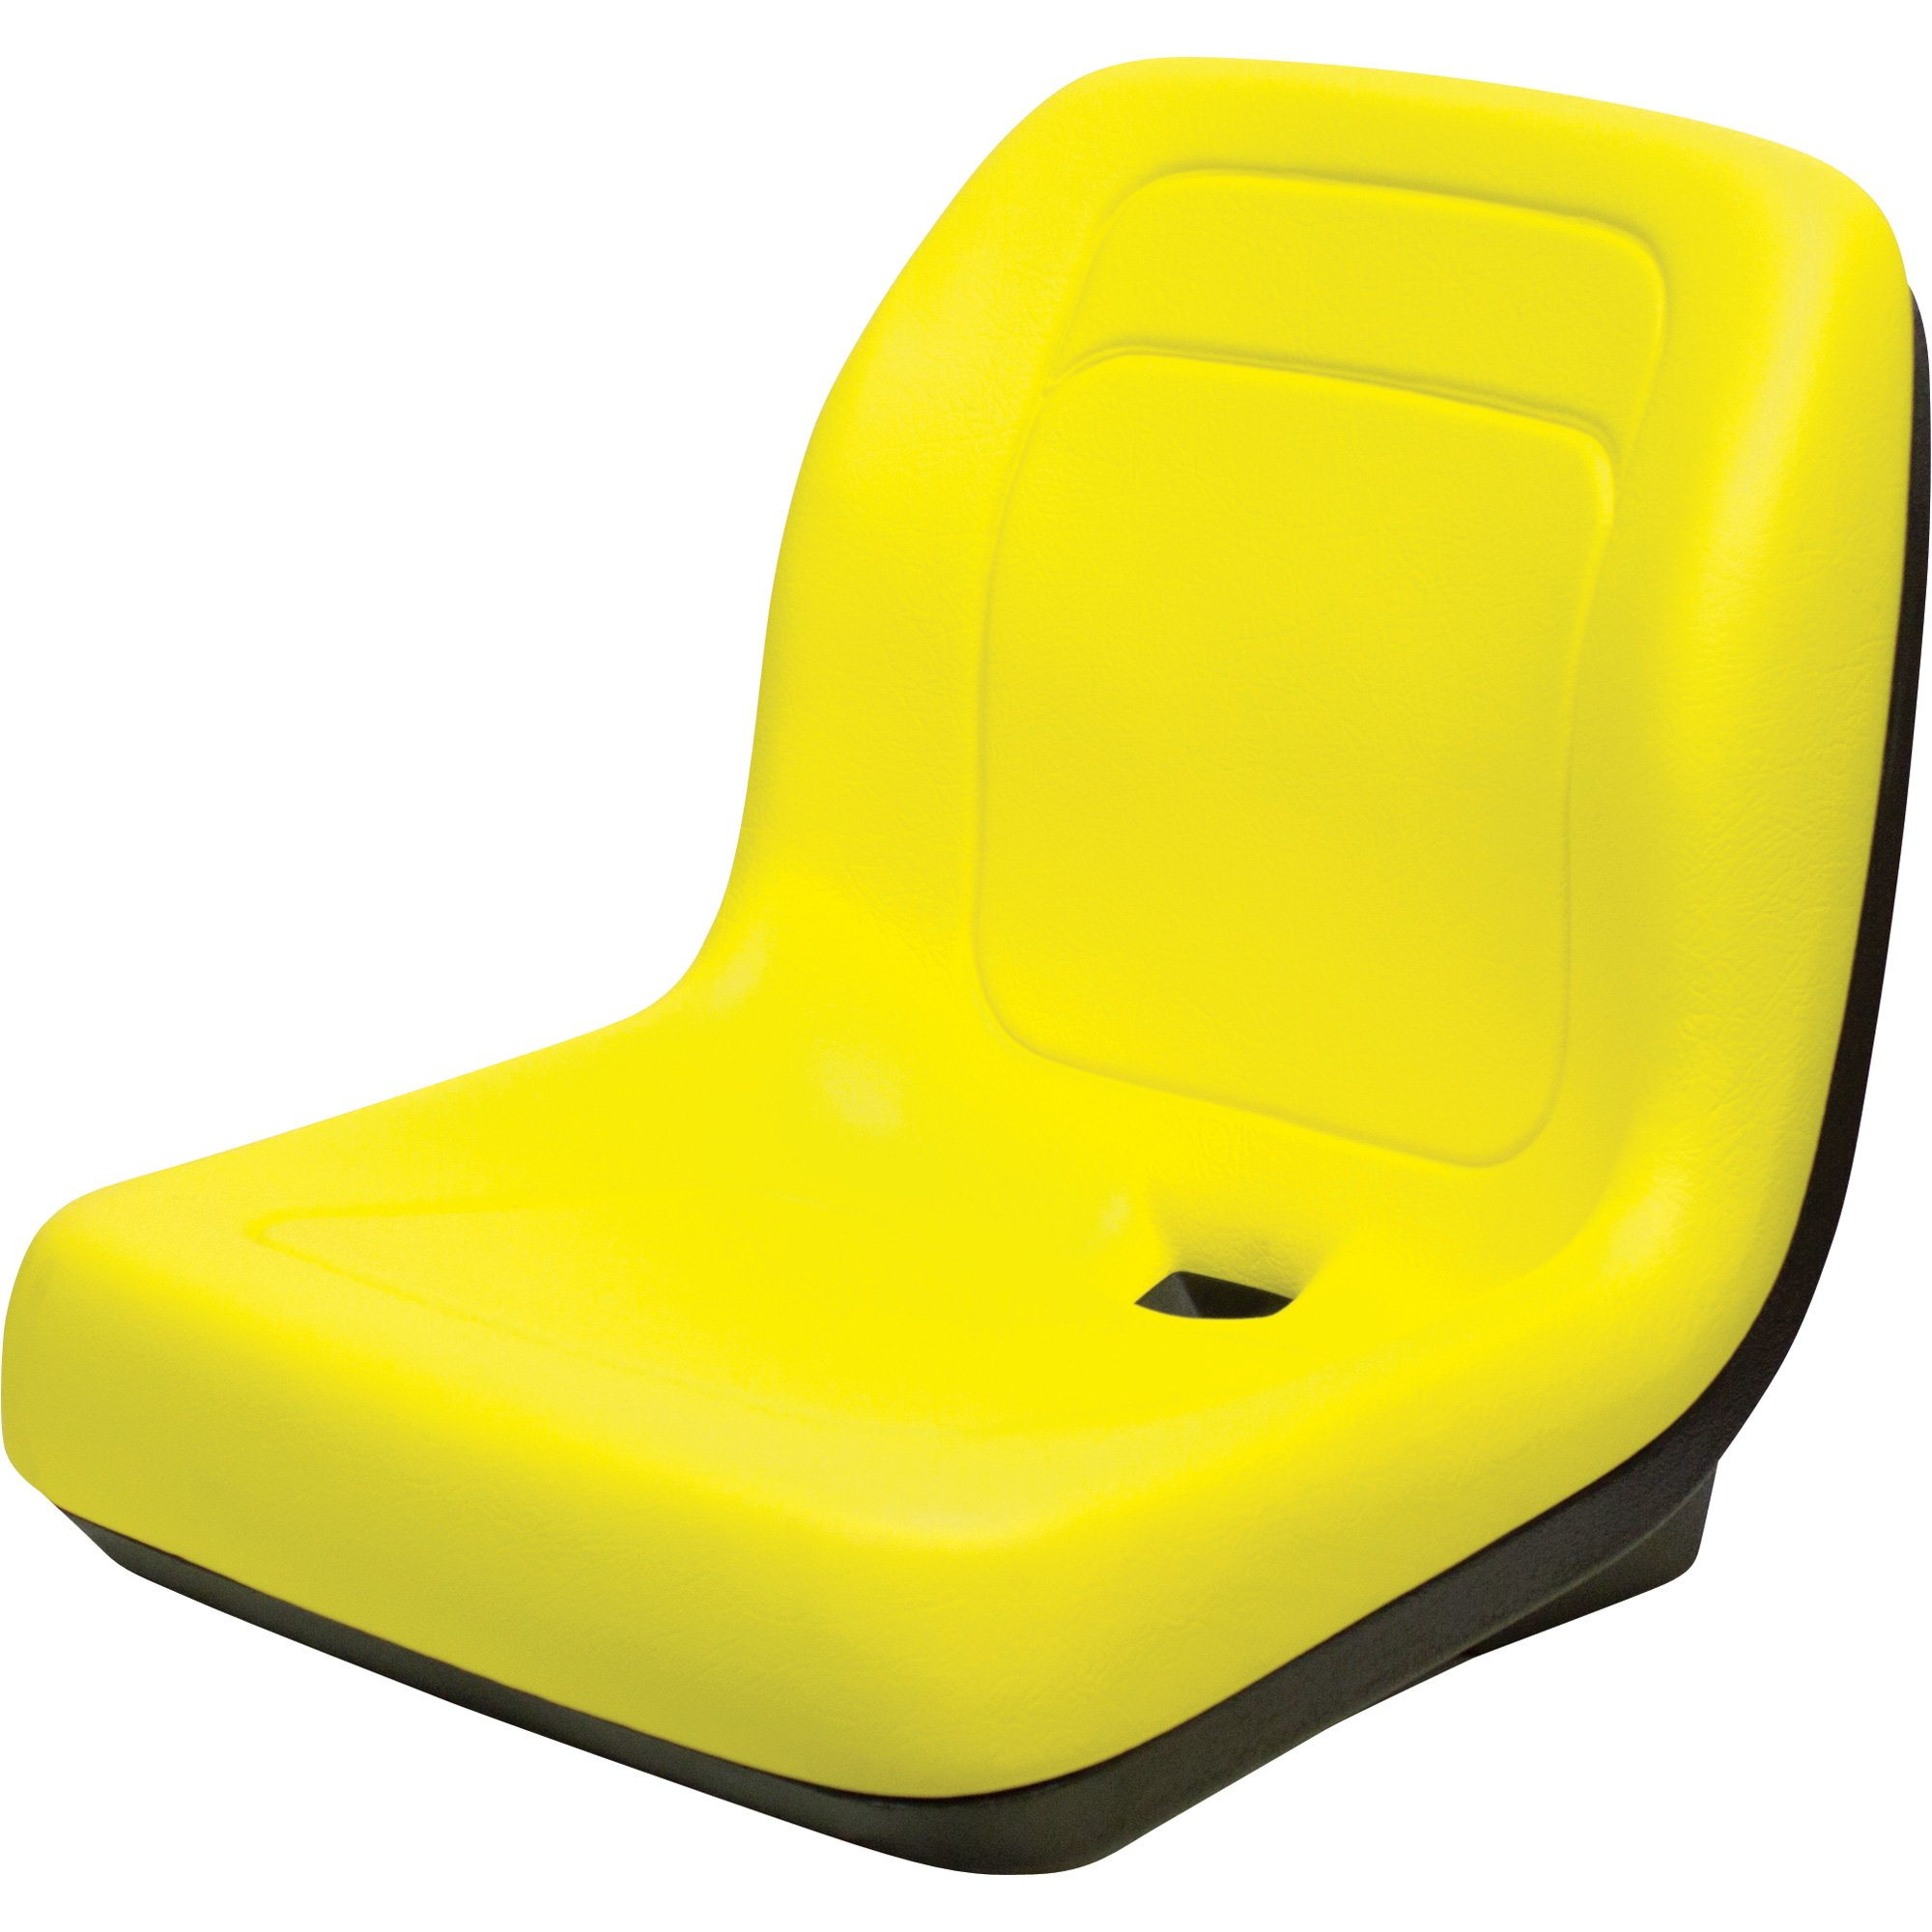 K And M Tractor Seats : K m tractor seat — yellow for john deere tractors